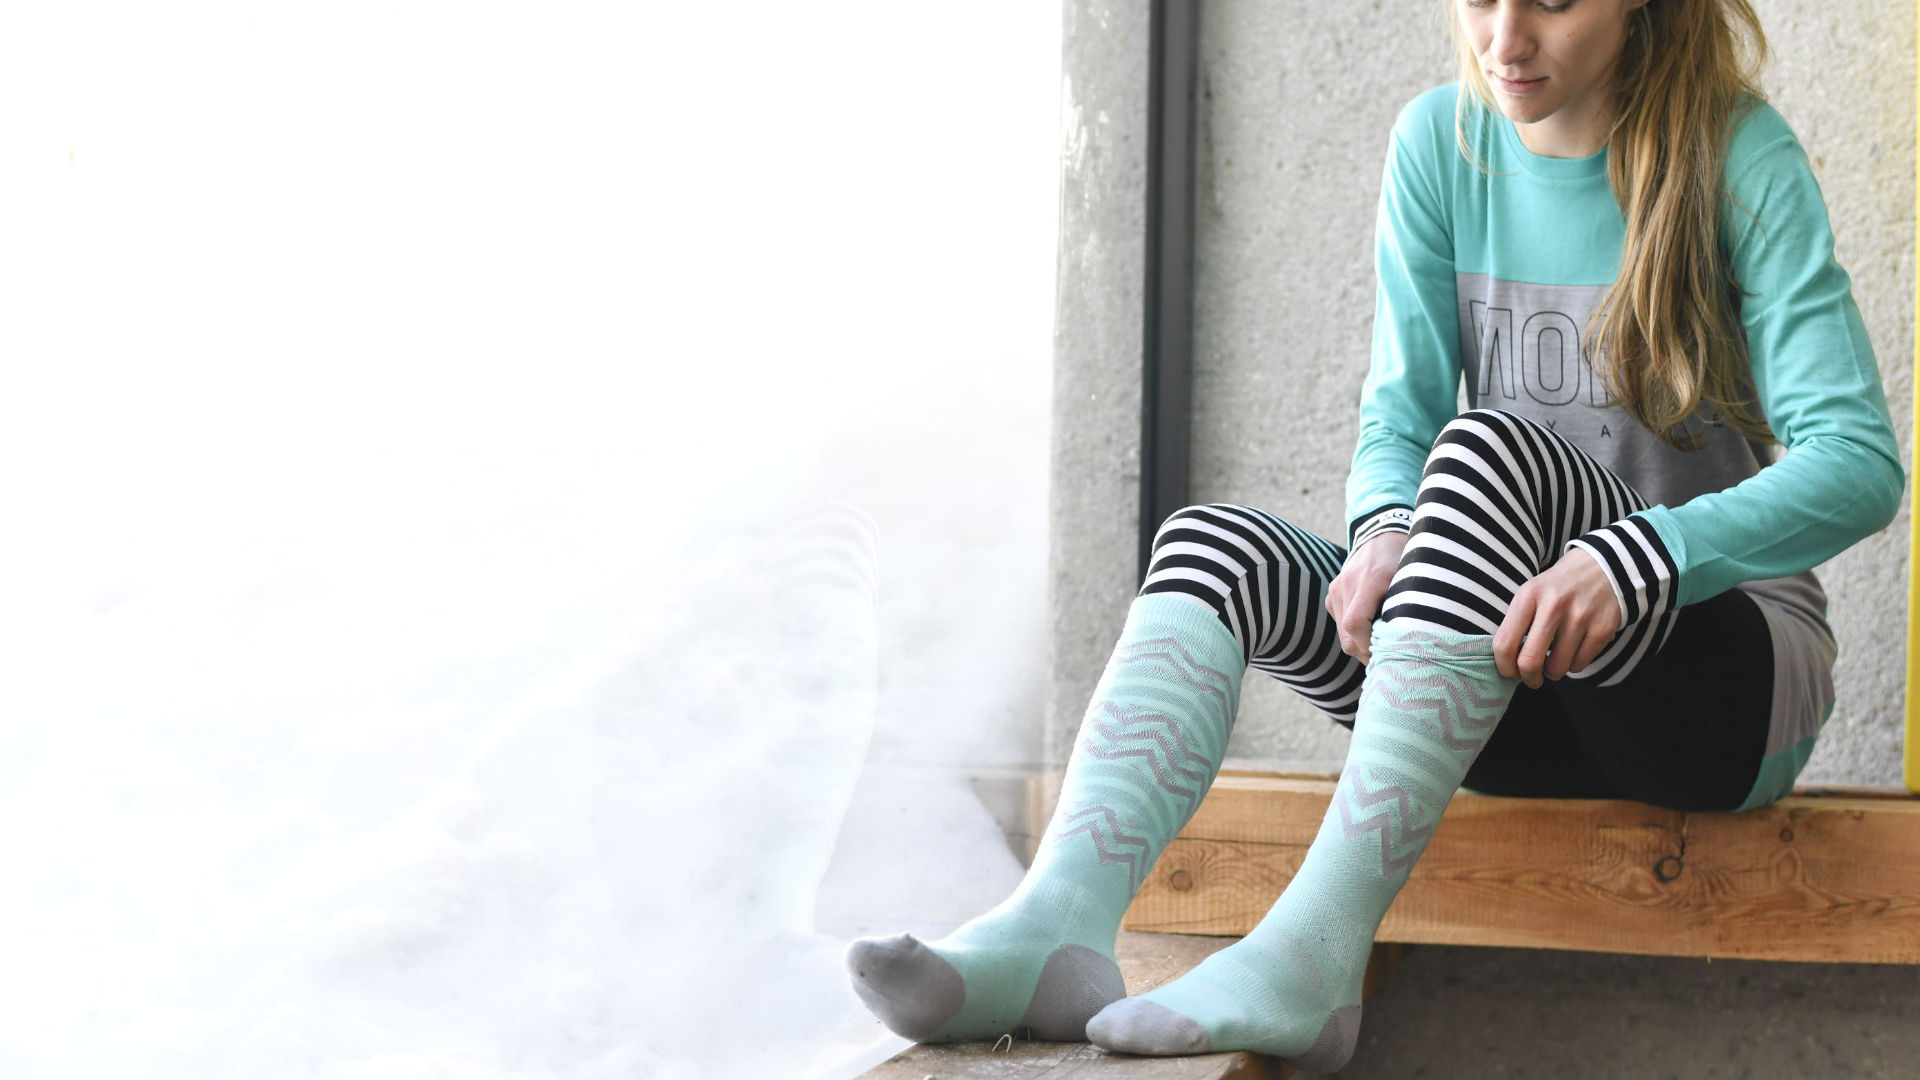 A girl in a base layer putting on a pair of ski or snowboard socks by Mons Royale